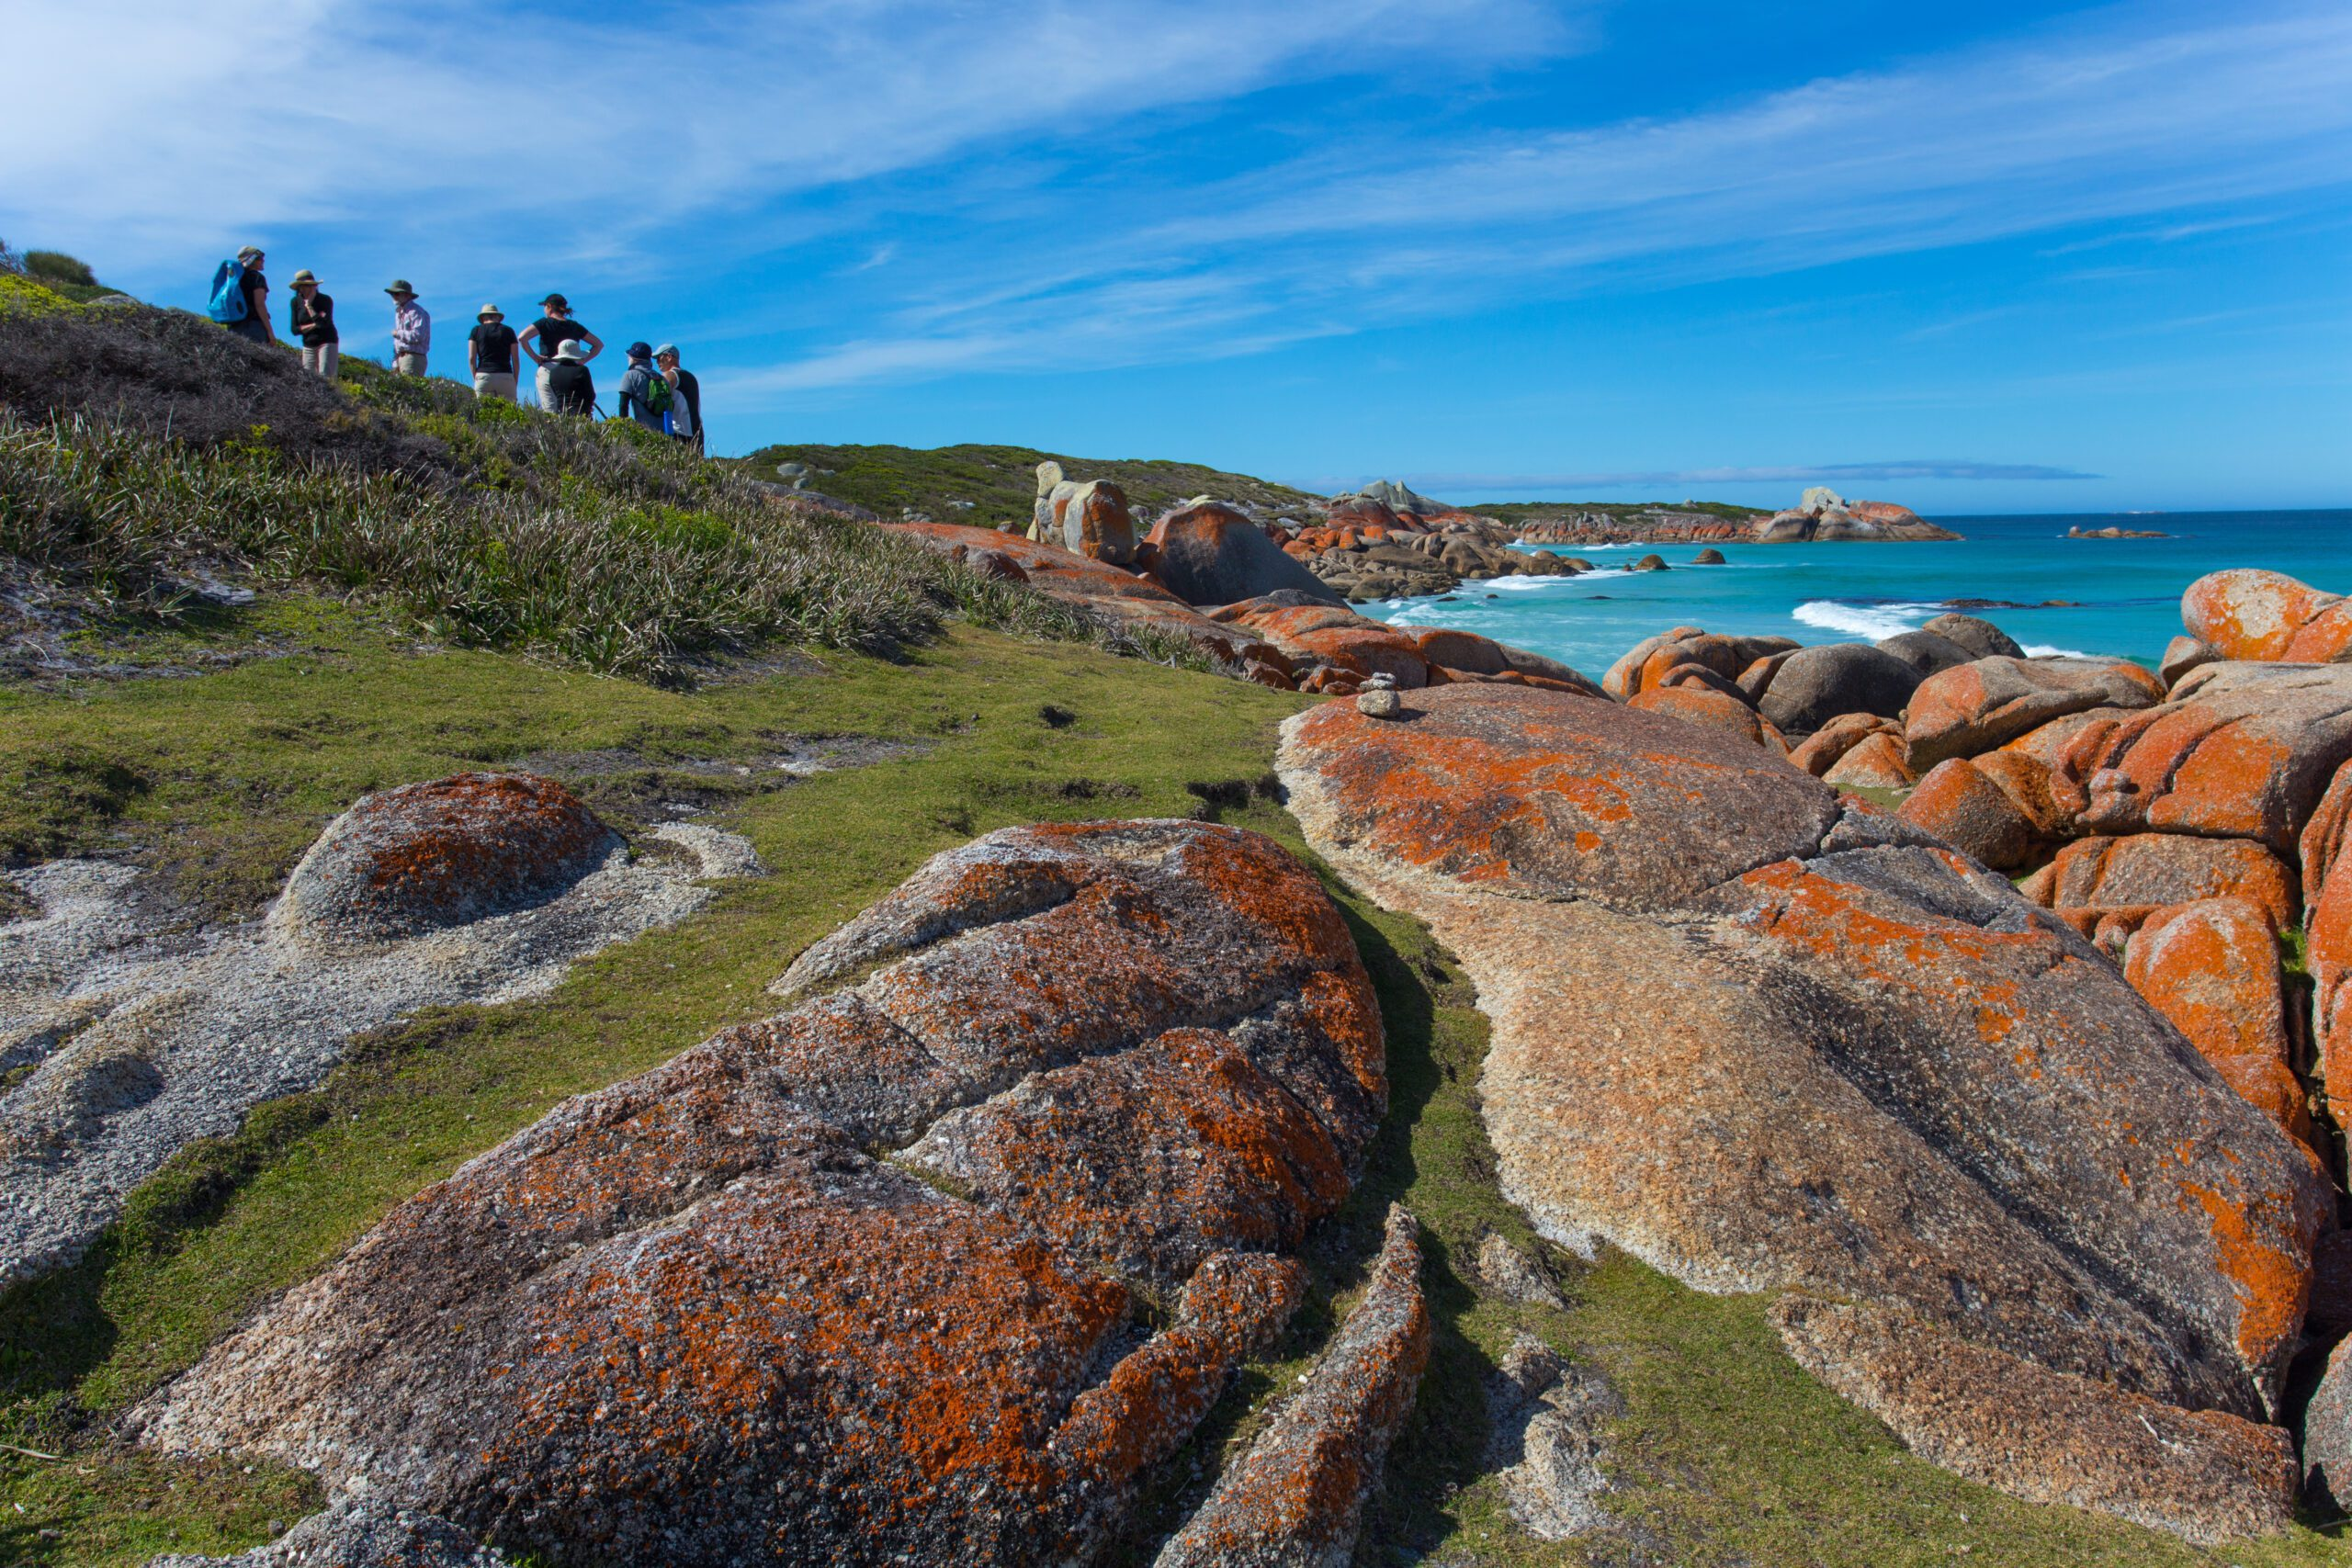 people walking in the distance with lichen covered rocks and beach in the foreground